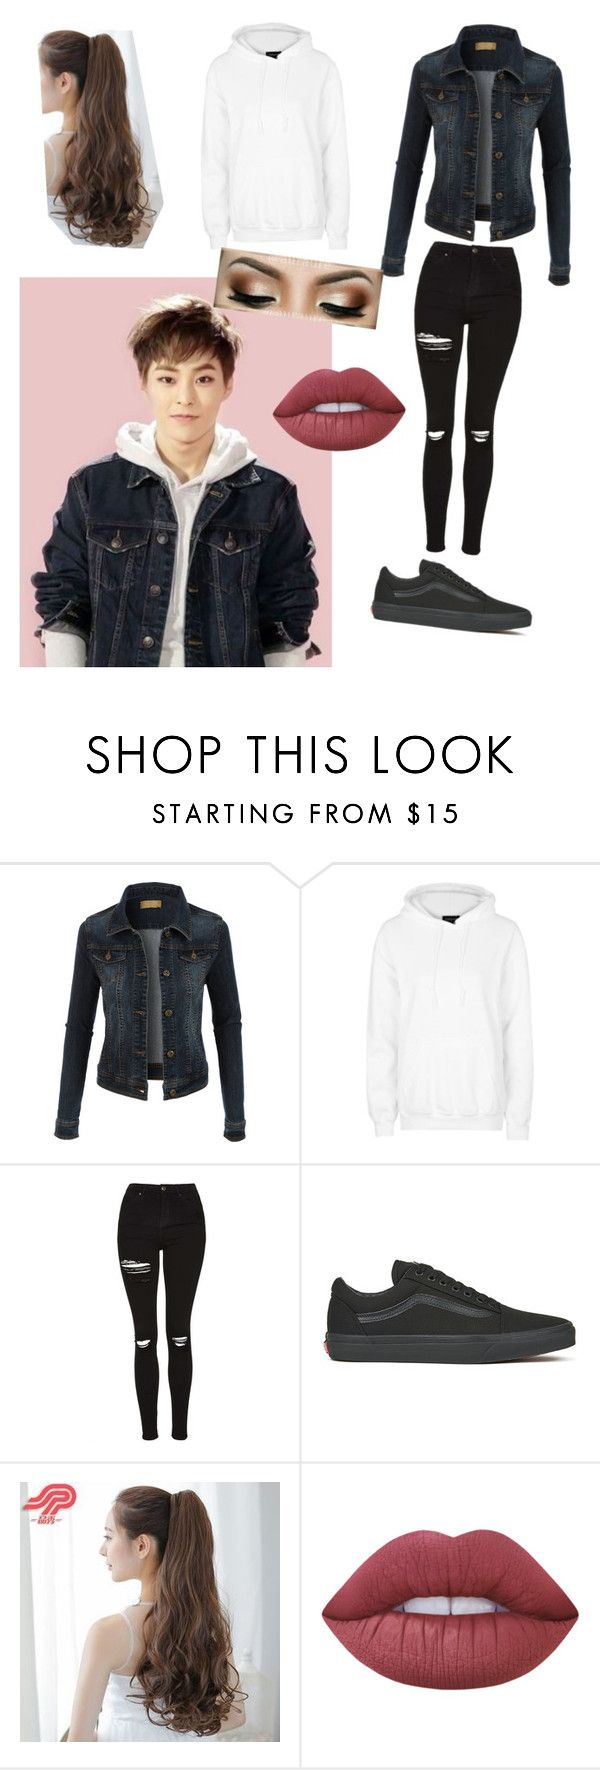 """""""Xiumin inspired look"""" by btsbxtch ❤ liked on Polyvore featuring LE3NO, Topshop, Vans, Pin Show, Lime Crime, EXO and xiumin"""